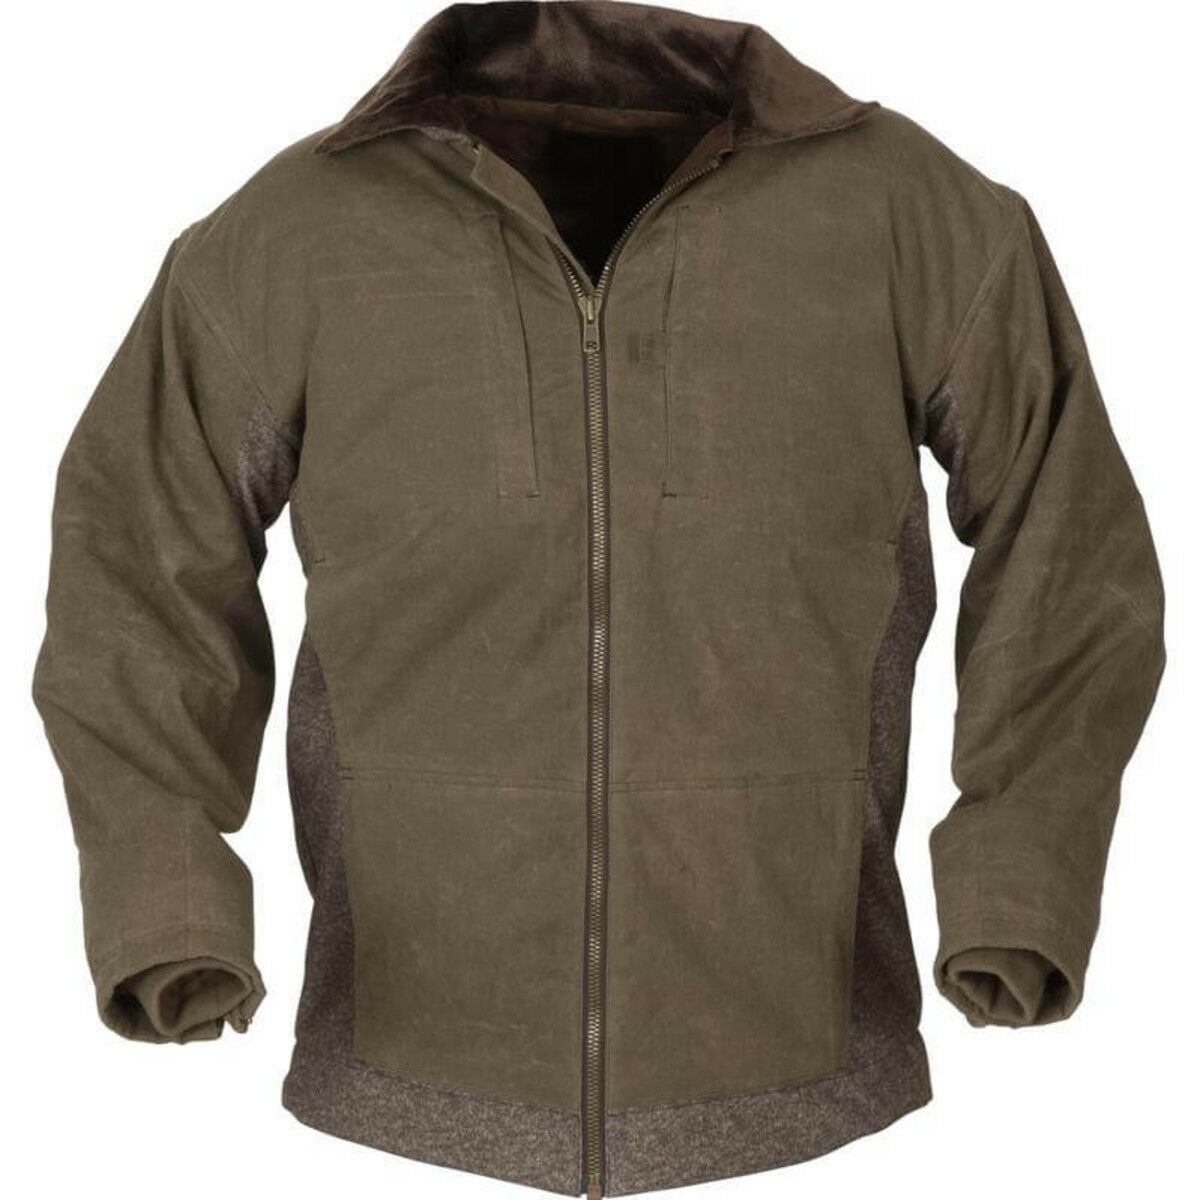 AVERY AVERY A1010003-MB-M AVERY HERITAGE FULL ZIP WATERFOWL SWEATER MEDIUM